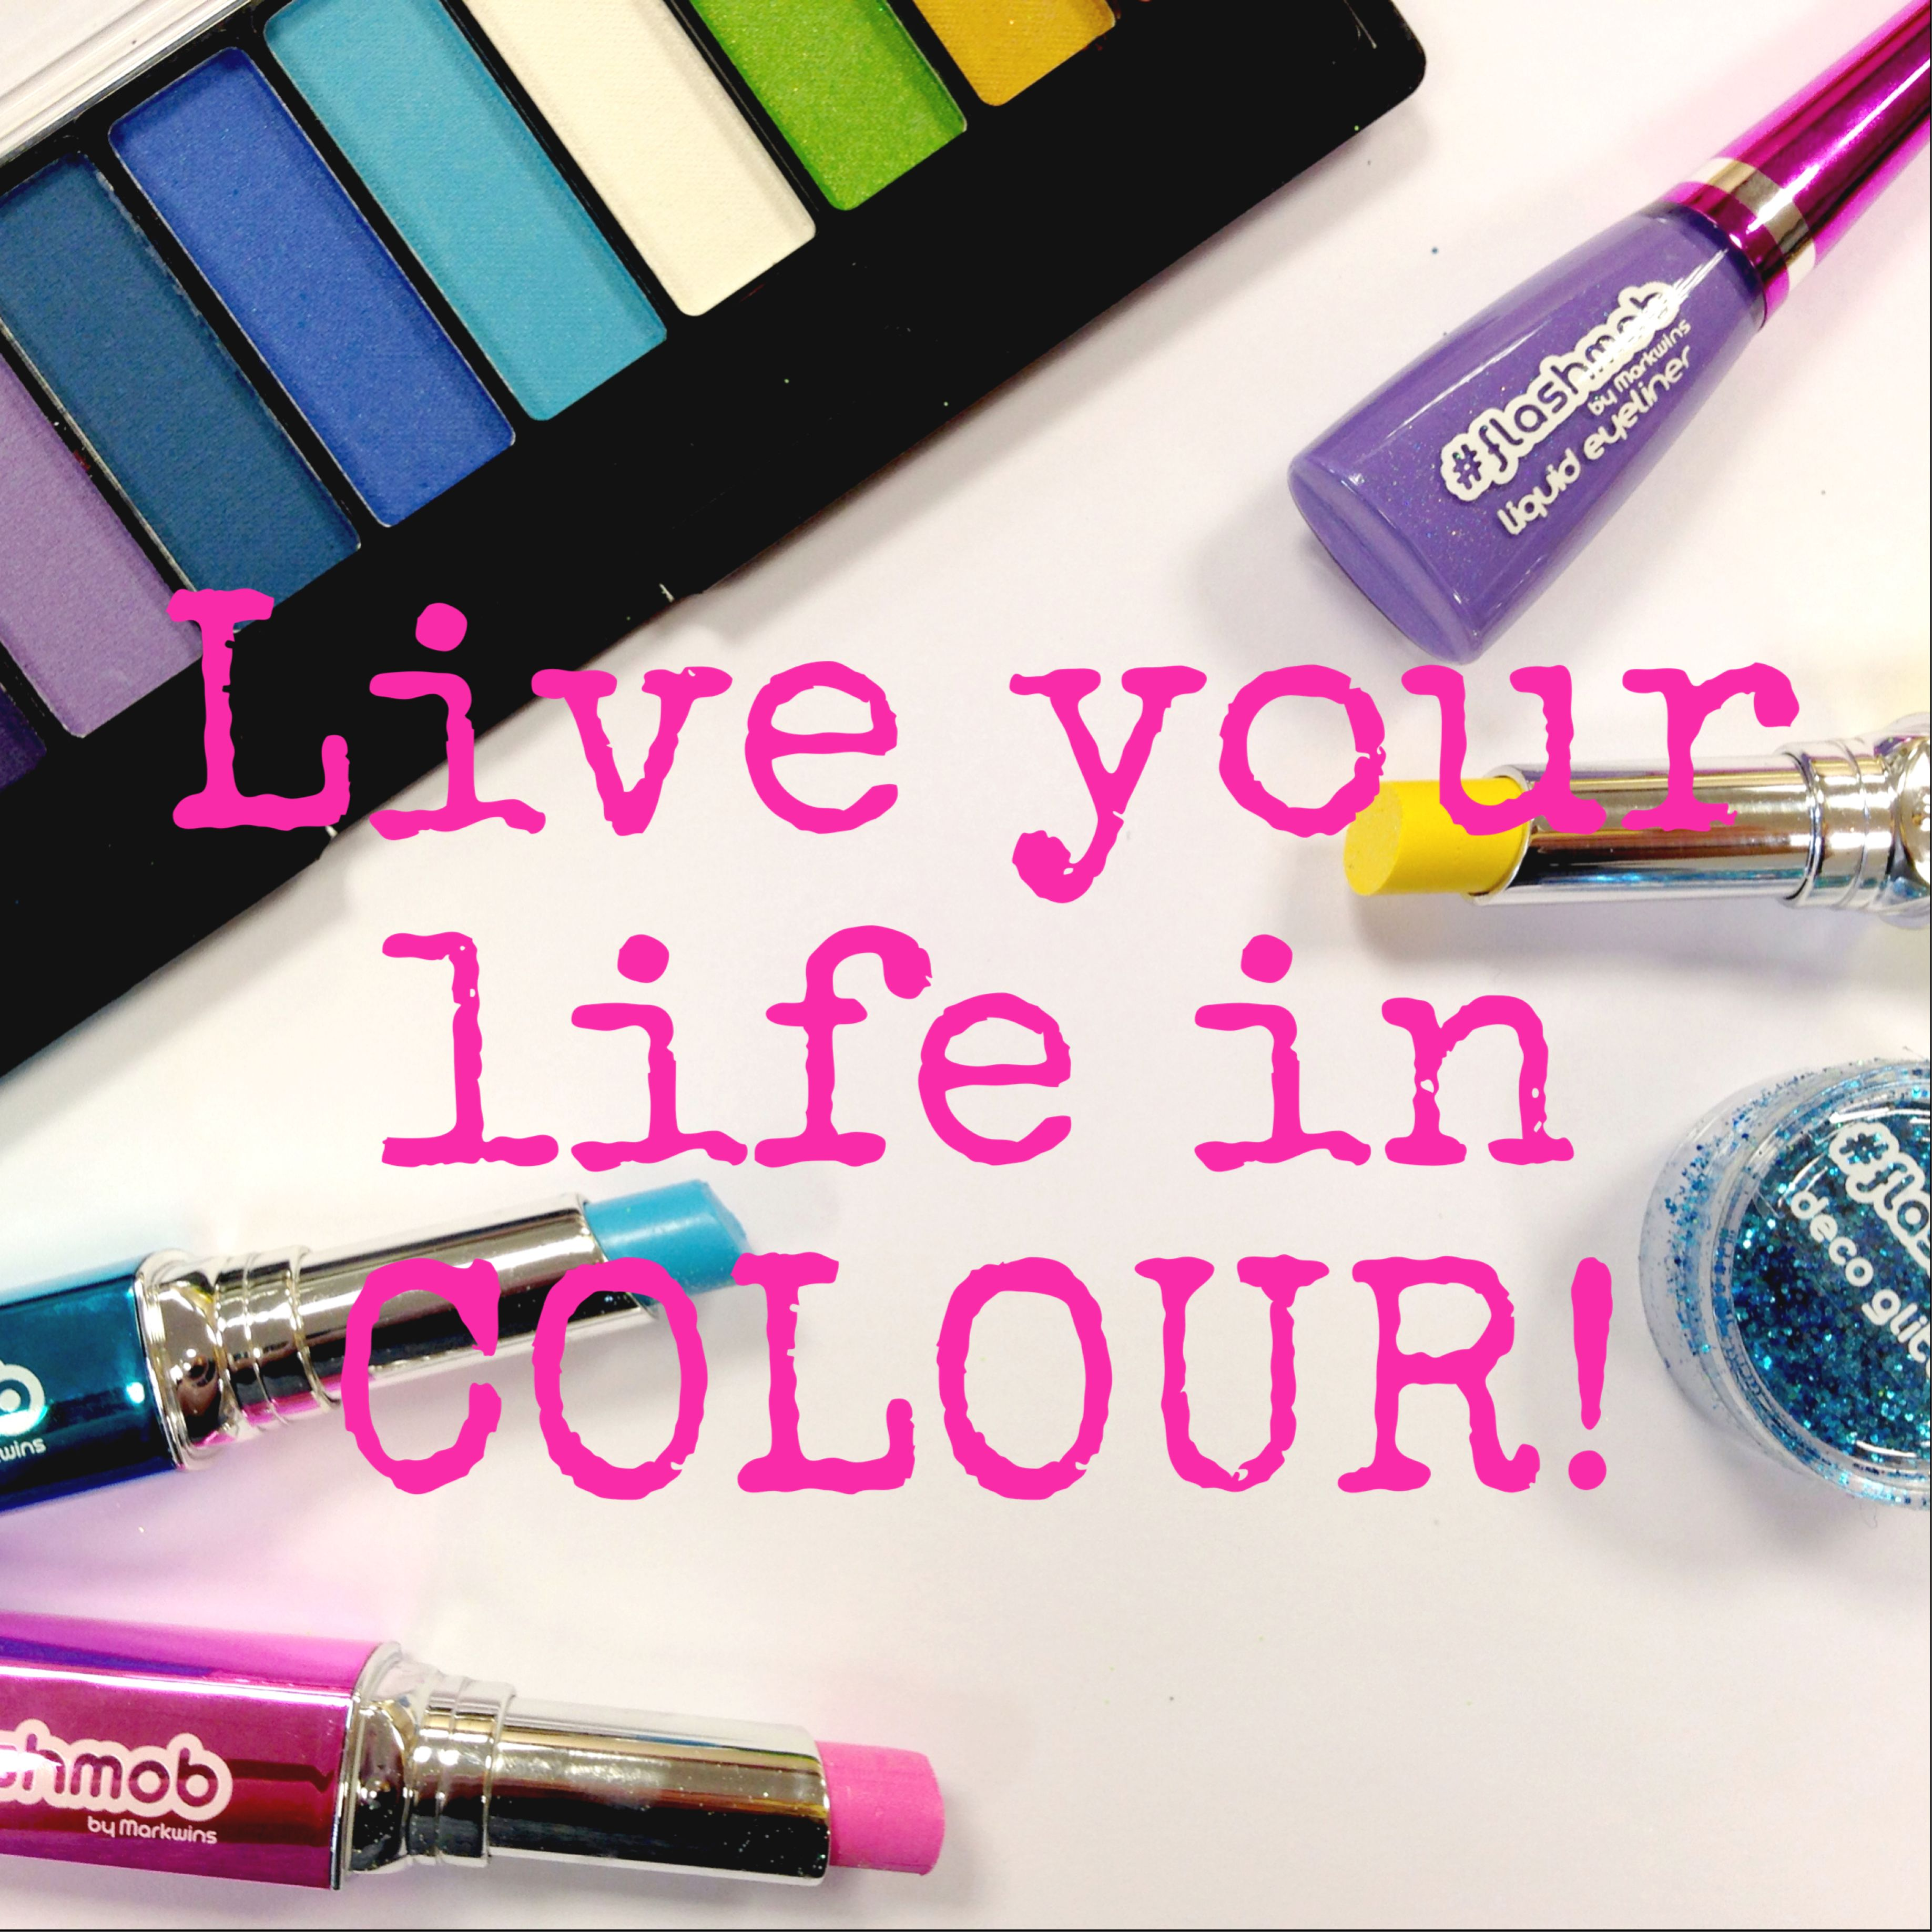 Color Your Life Quotes Live Your Life In Colour Quotes Flashmob  Words  Pinterest